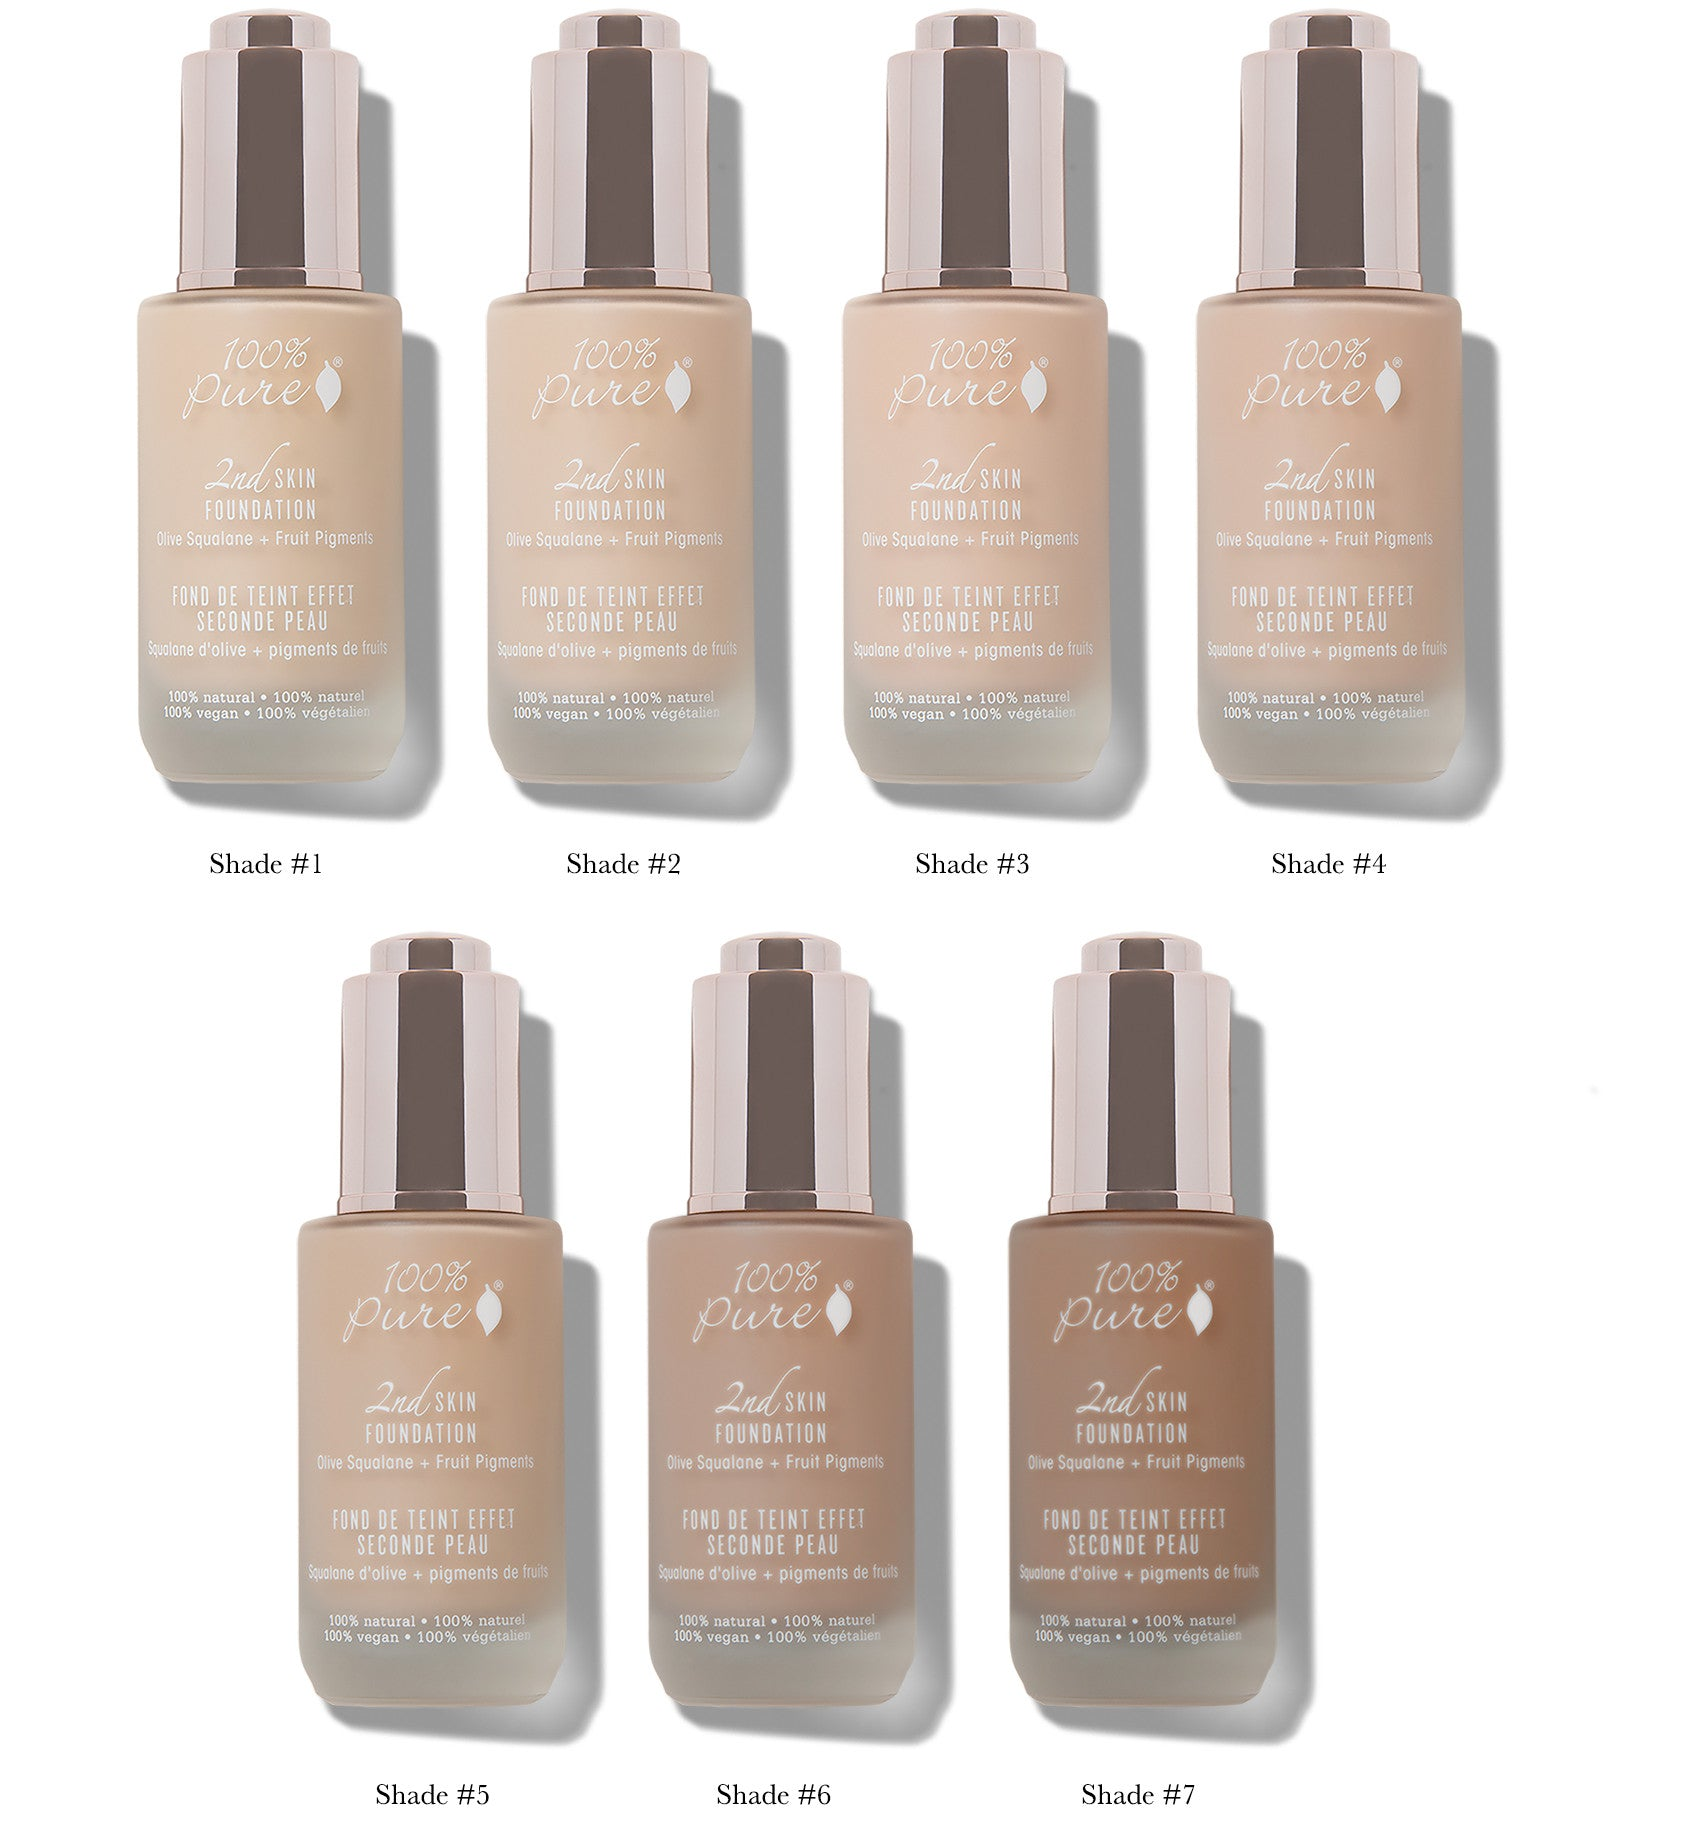 2nd Skin Foundations